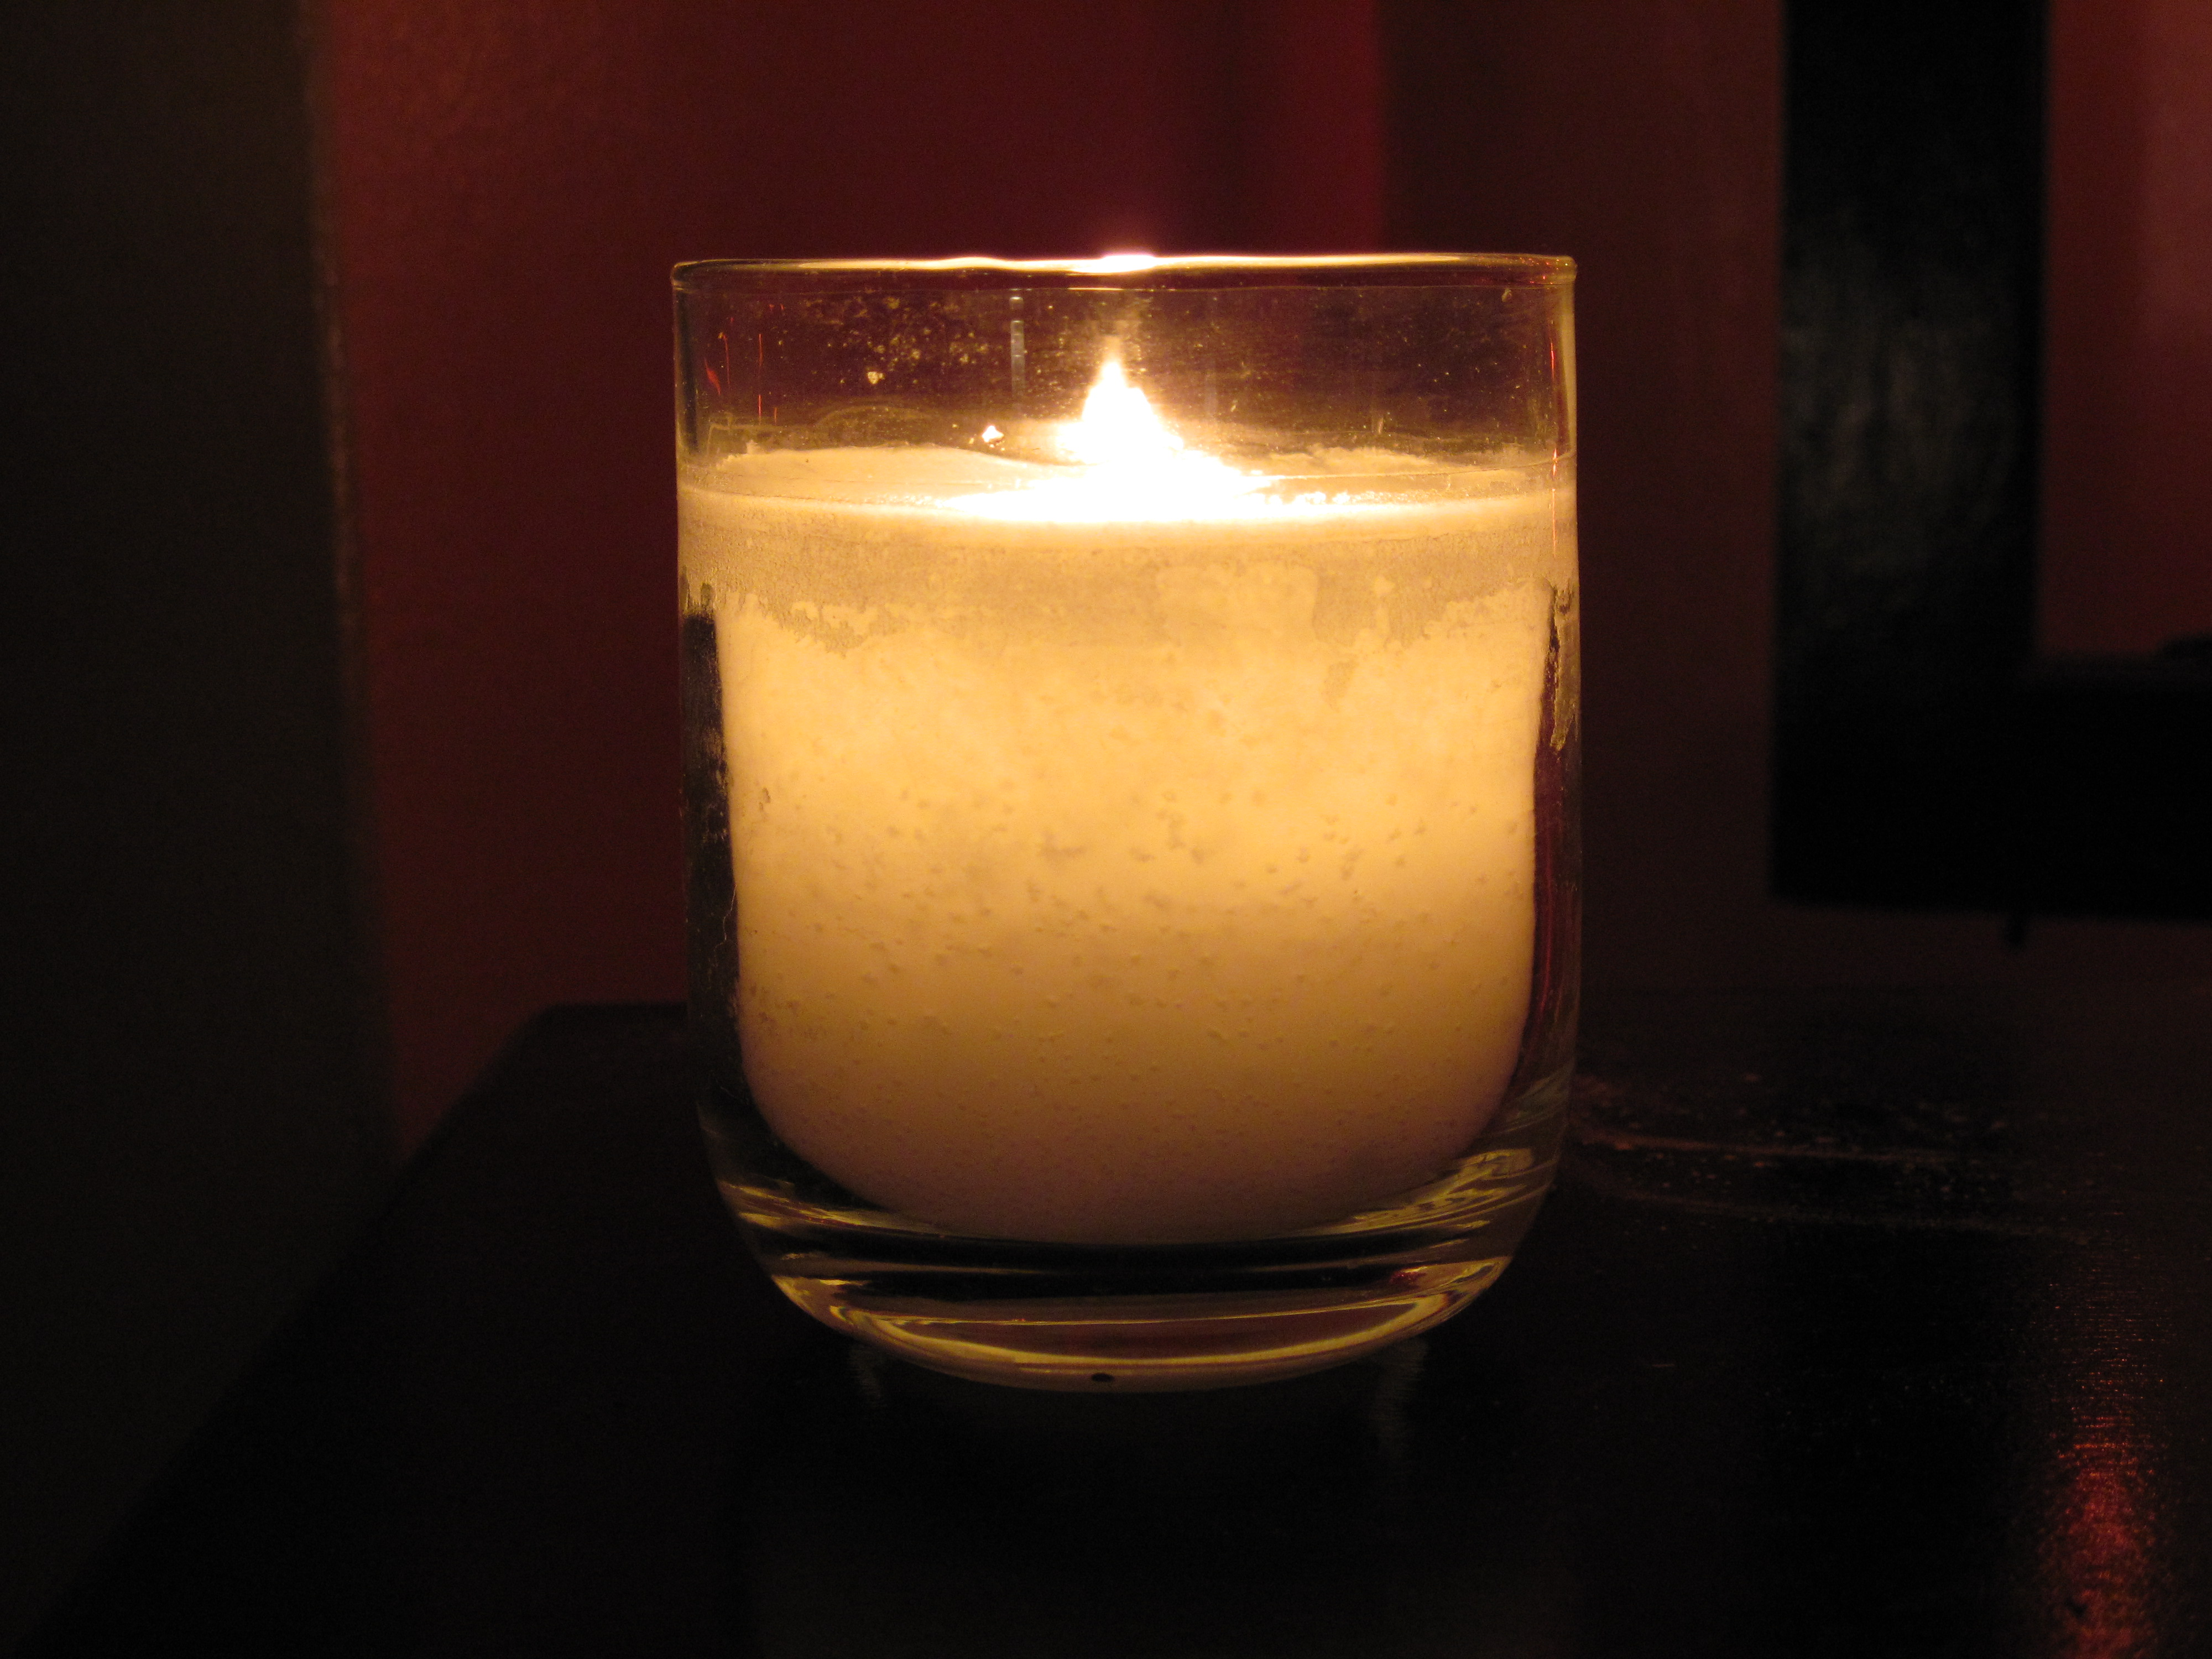 Why You Should Never Let A Candle Burn To The Very Bottom